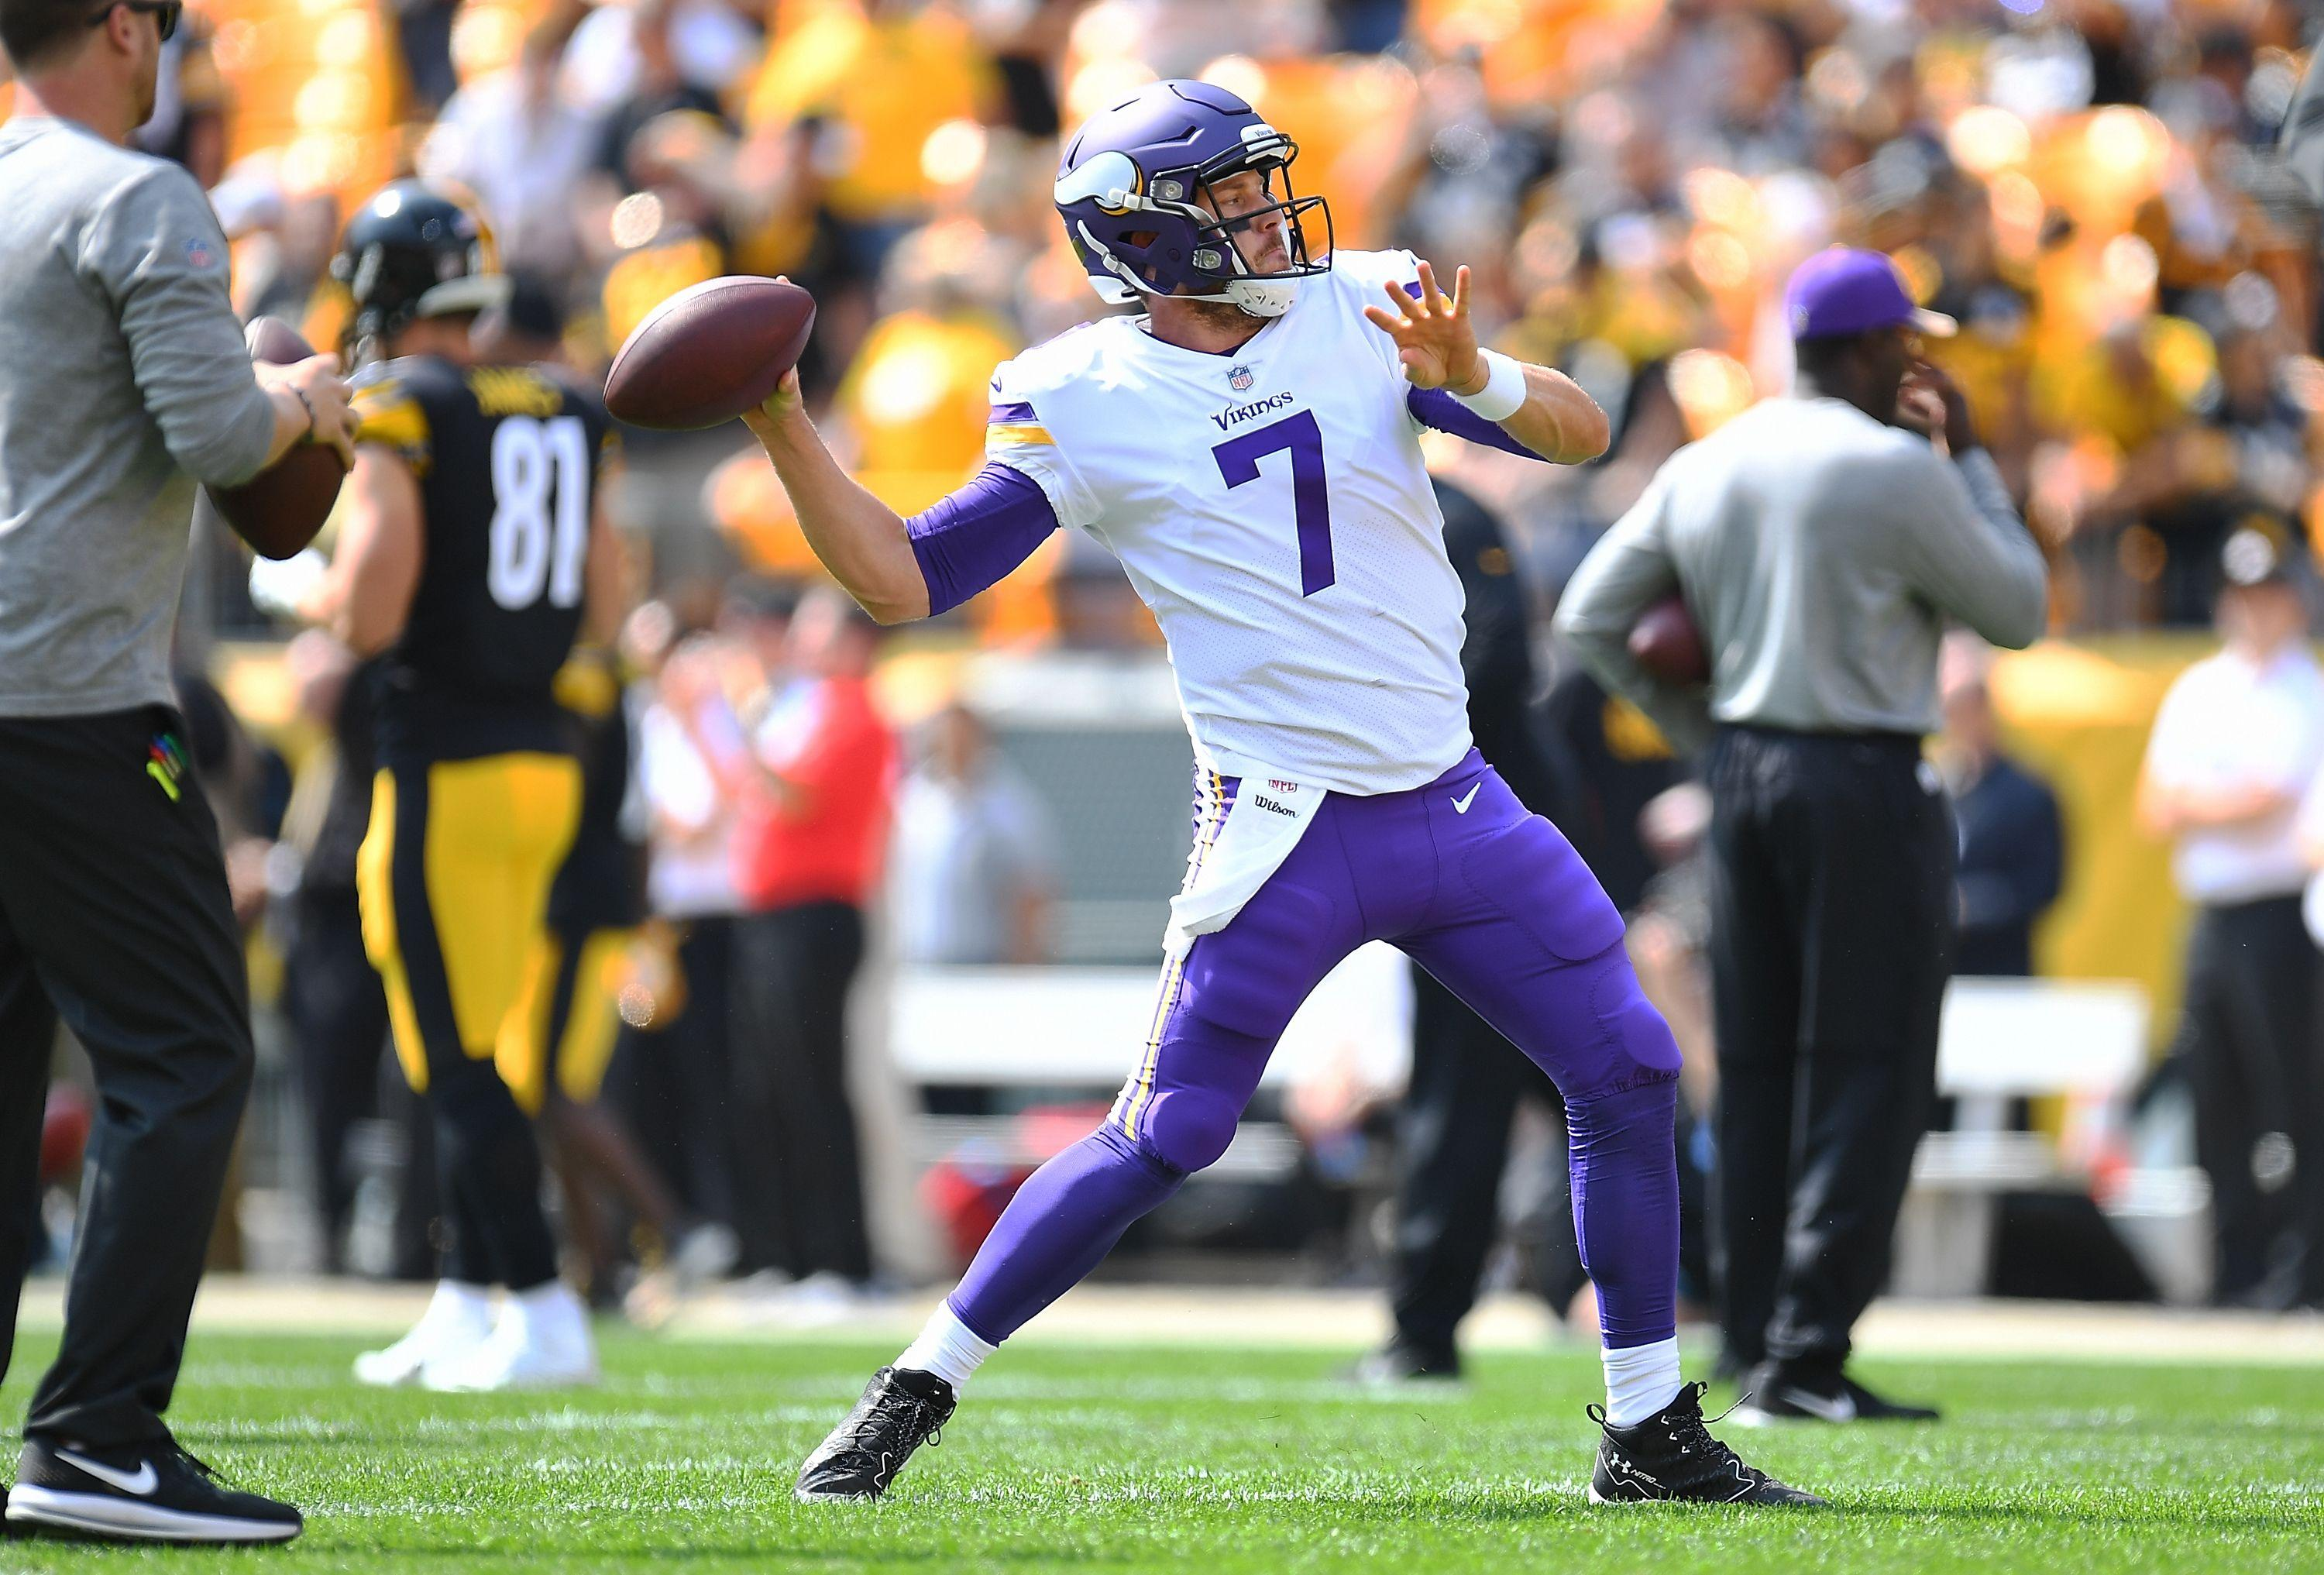 With Bradford out, what can the Vikings expect from Keenum in Week 3?